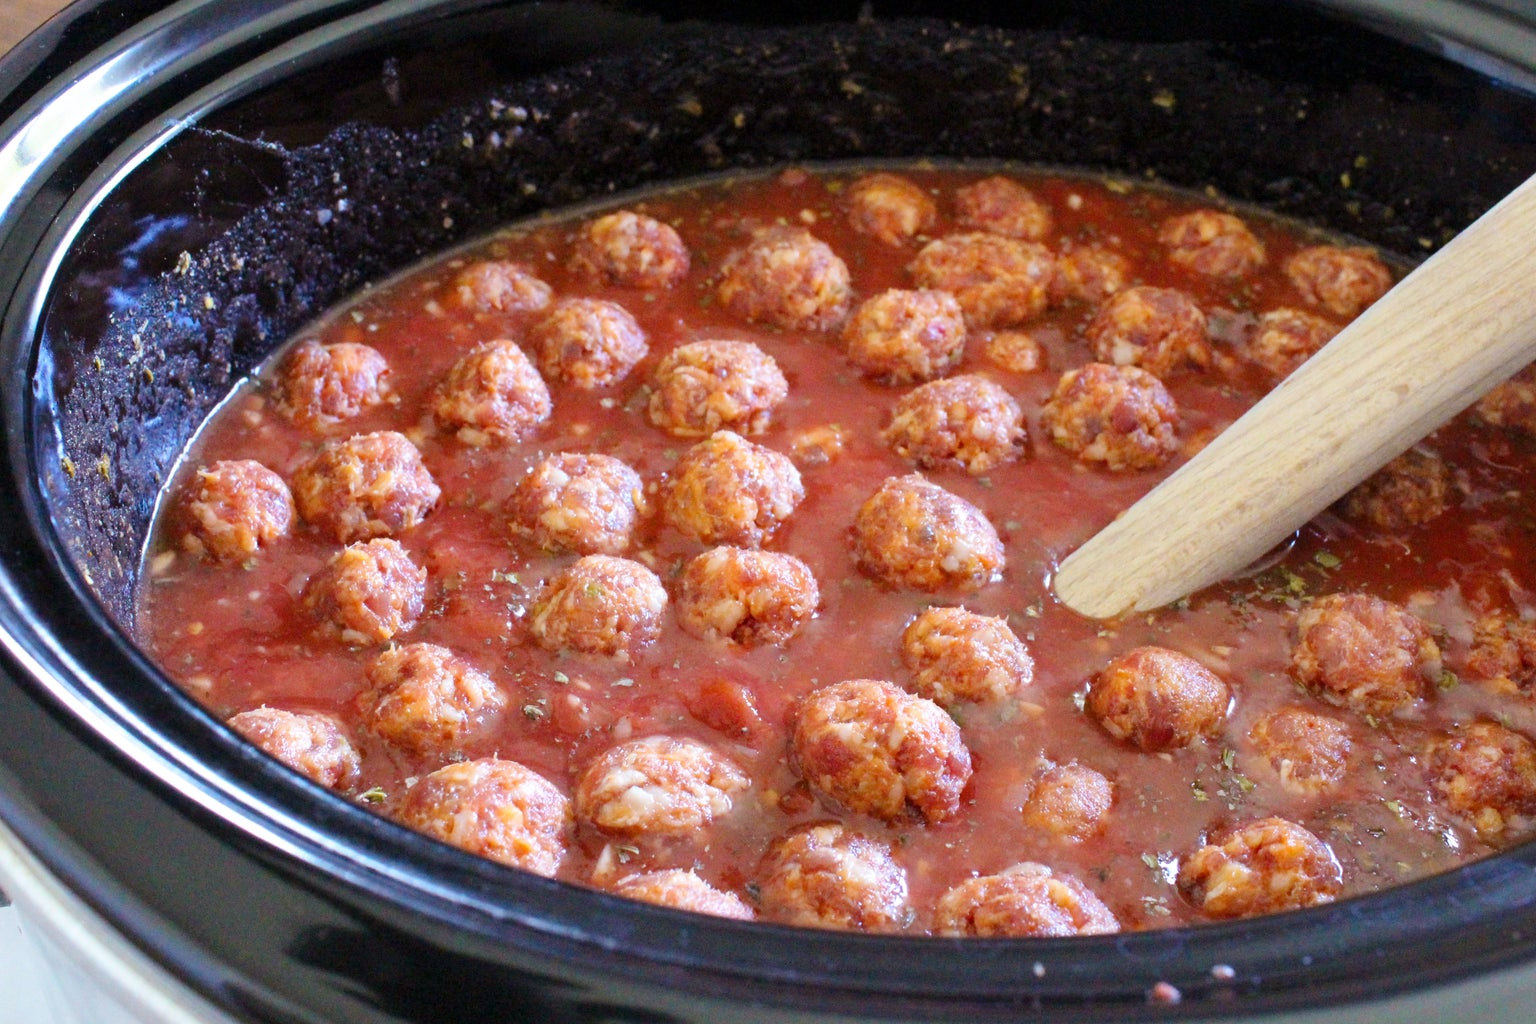 Make the Meatballs and Add to Sauce